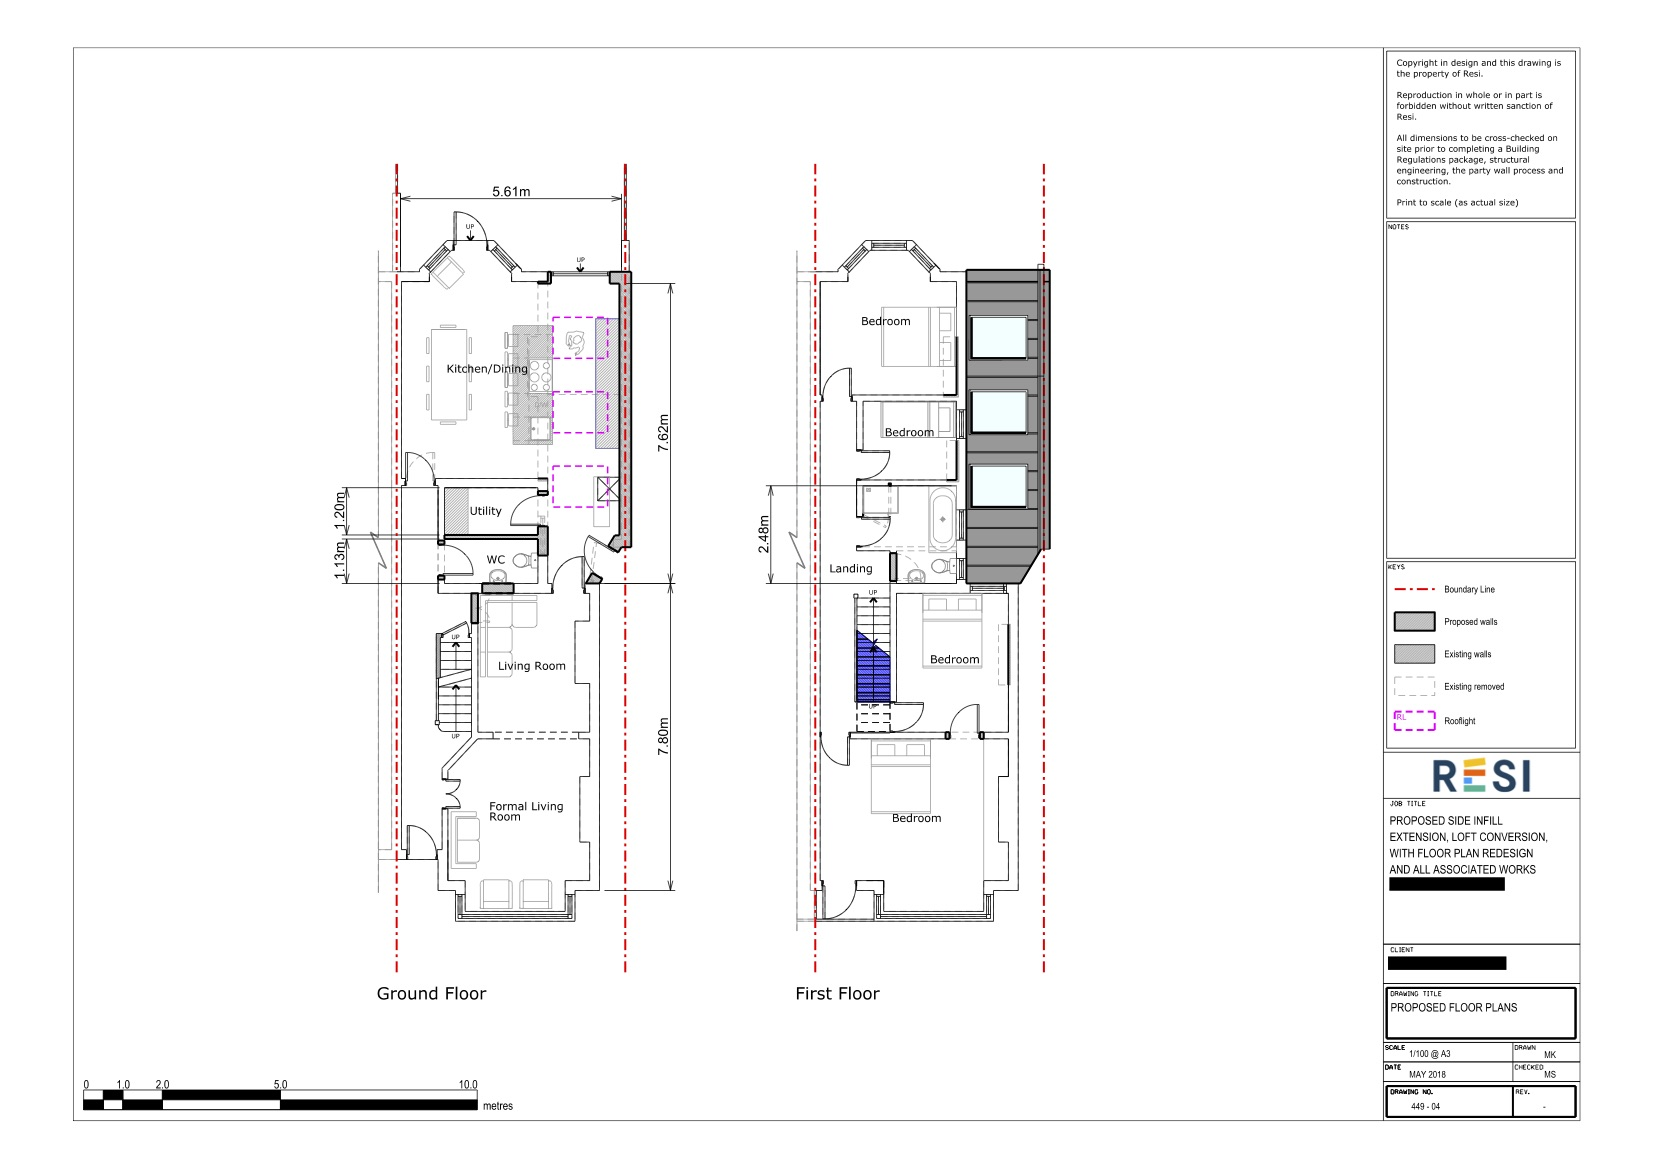 Architectural drawing set 3   ground and first floor plans